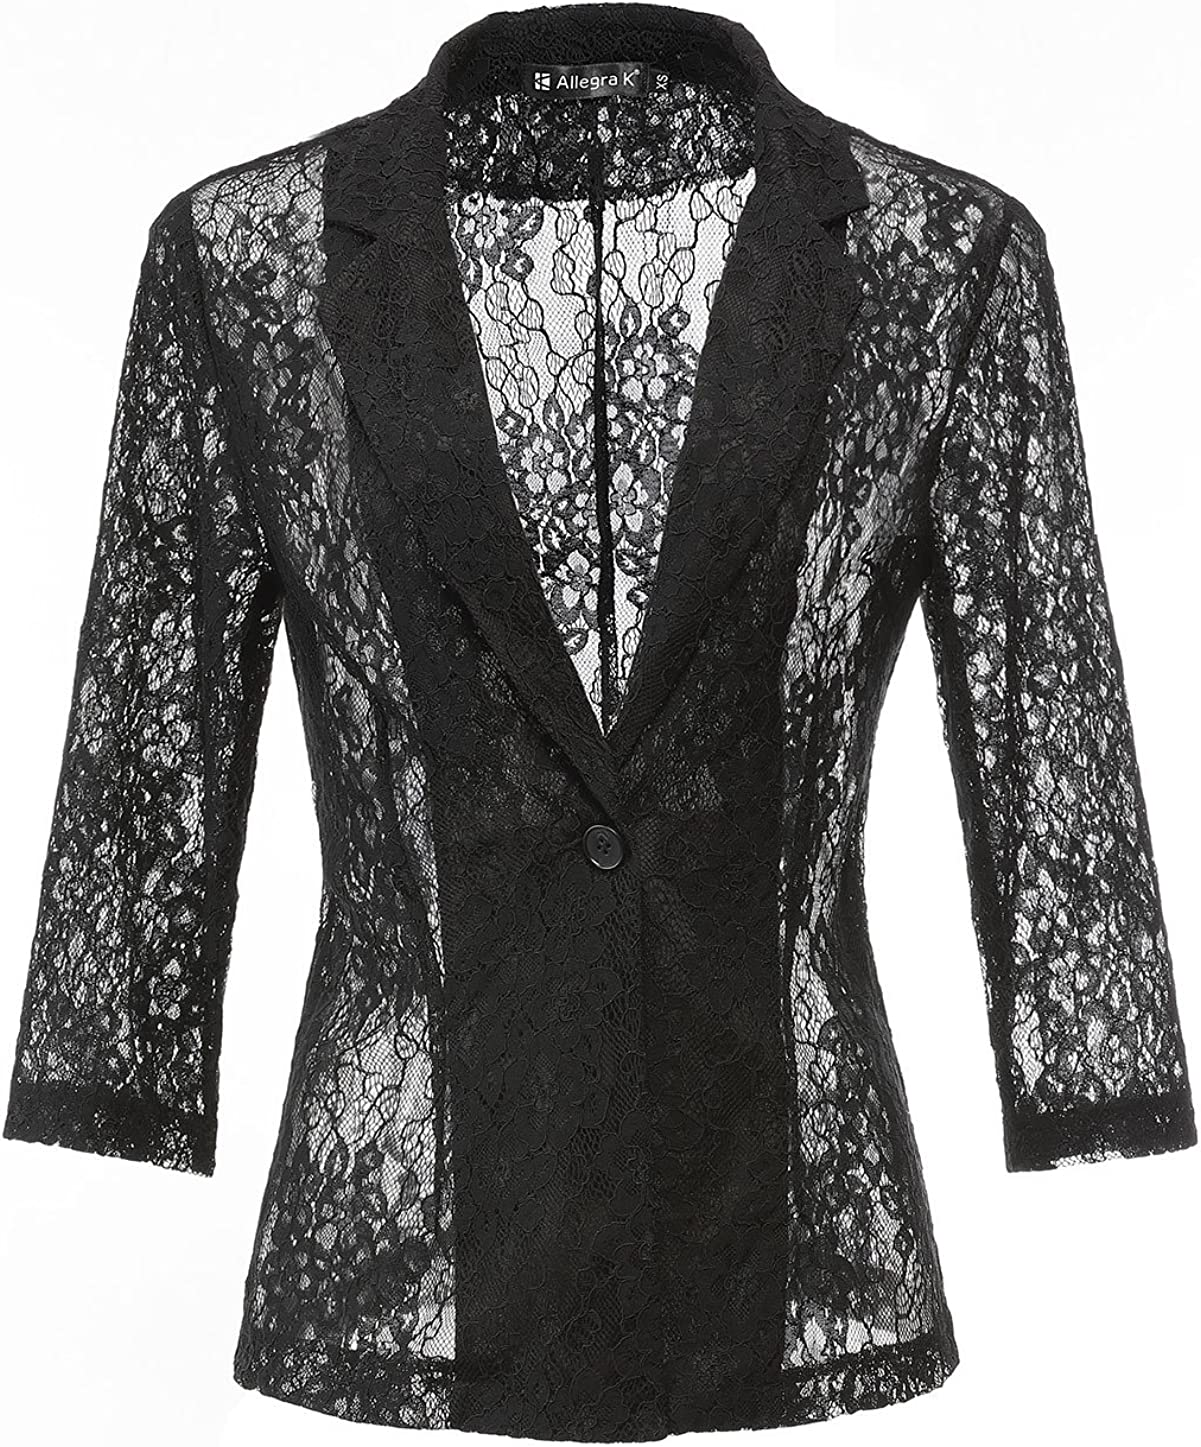 Allegra K Women's 3/4 Sleeves Notched Lapel One-Button Cardigan Lace Bomber Jacket Blazer Black